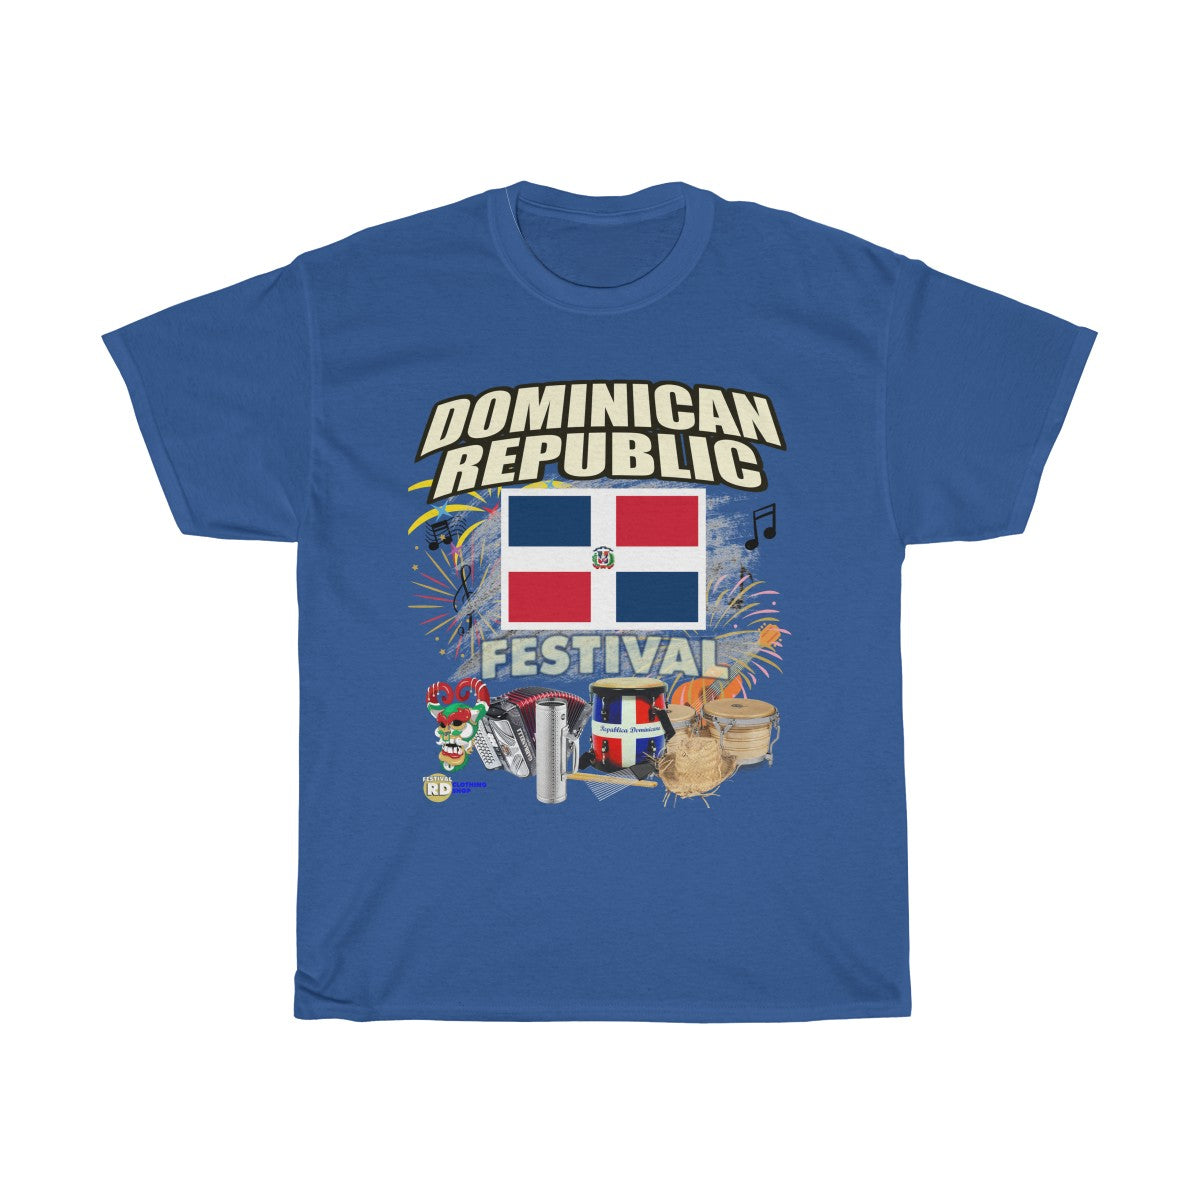 Dominican Republic Carnaval Festival Edition Tee Shirt